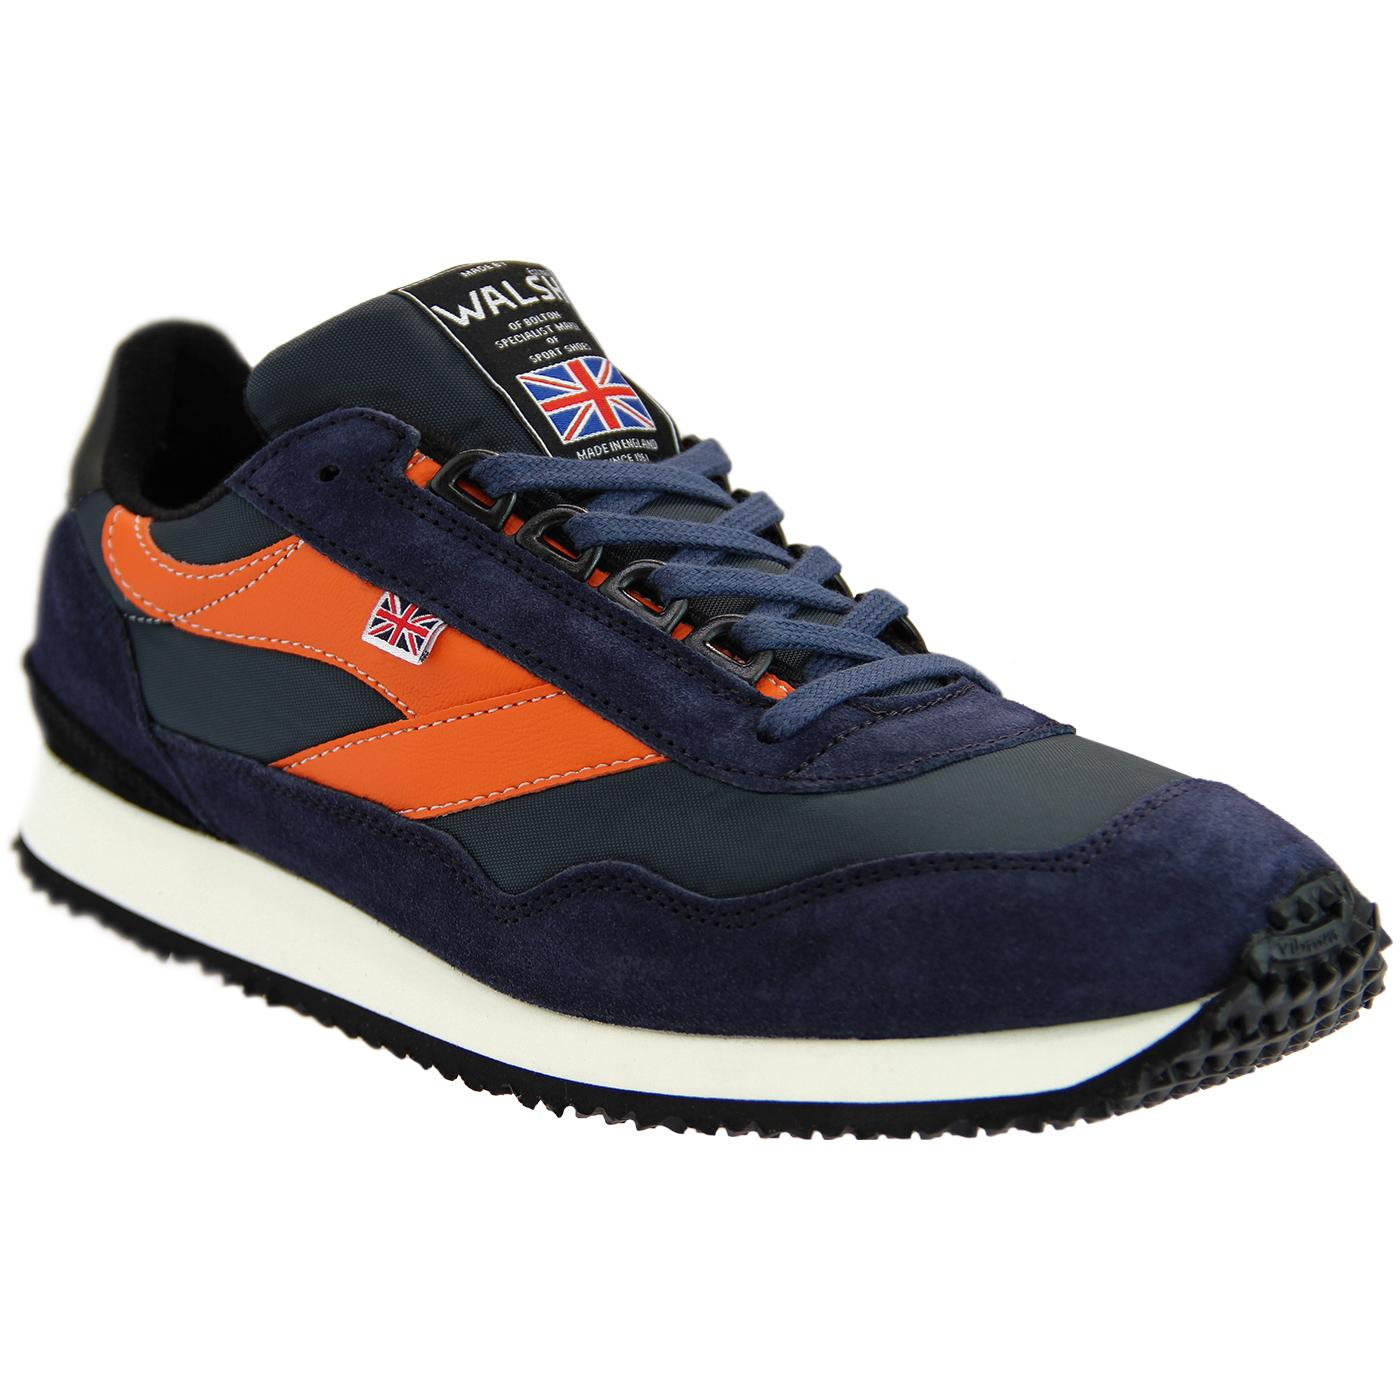 Ensign WALSH Made in England Retro Trainers (Navy)